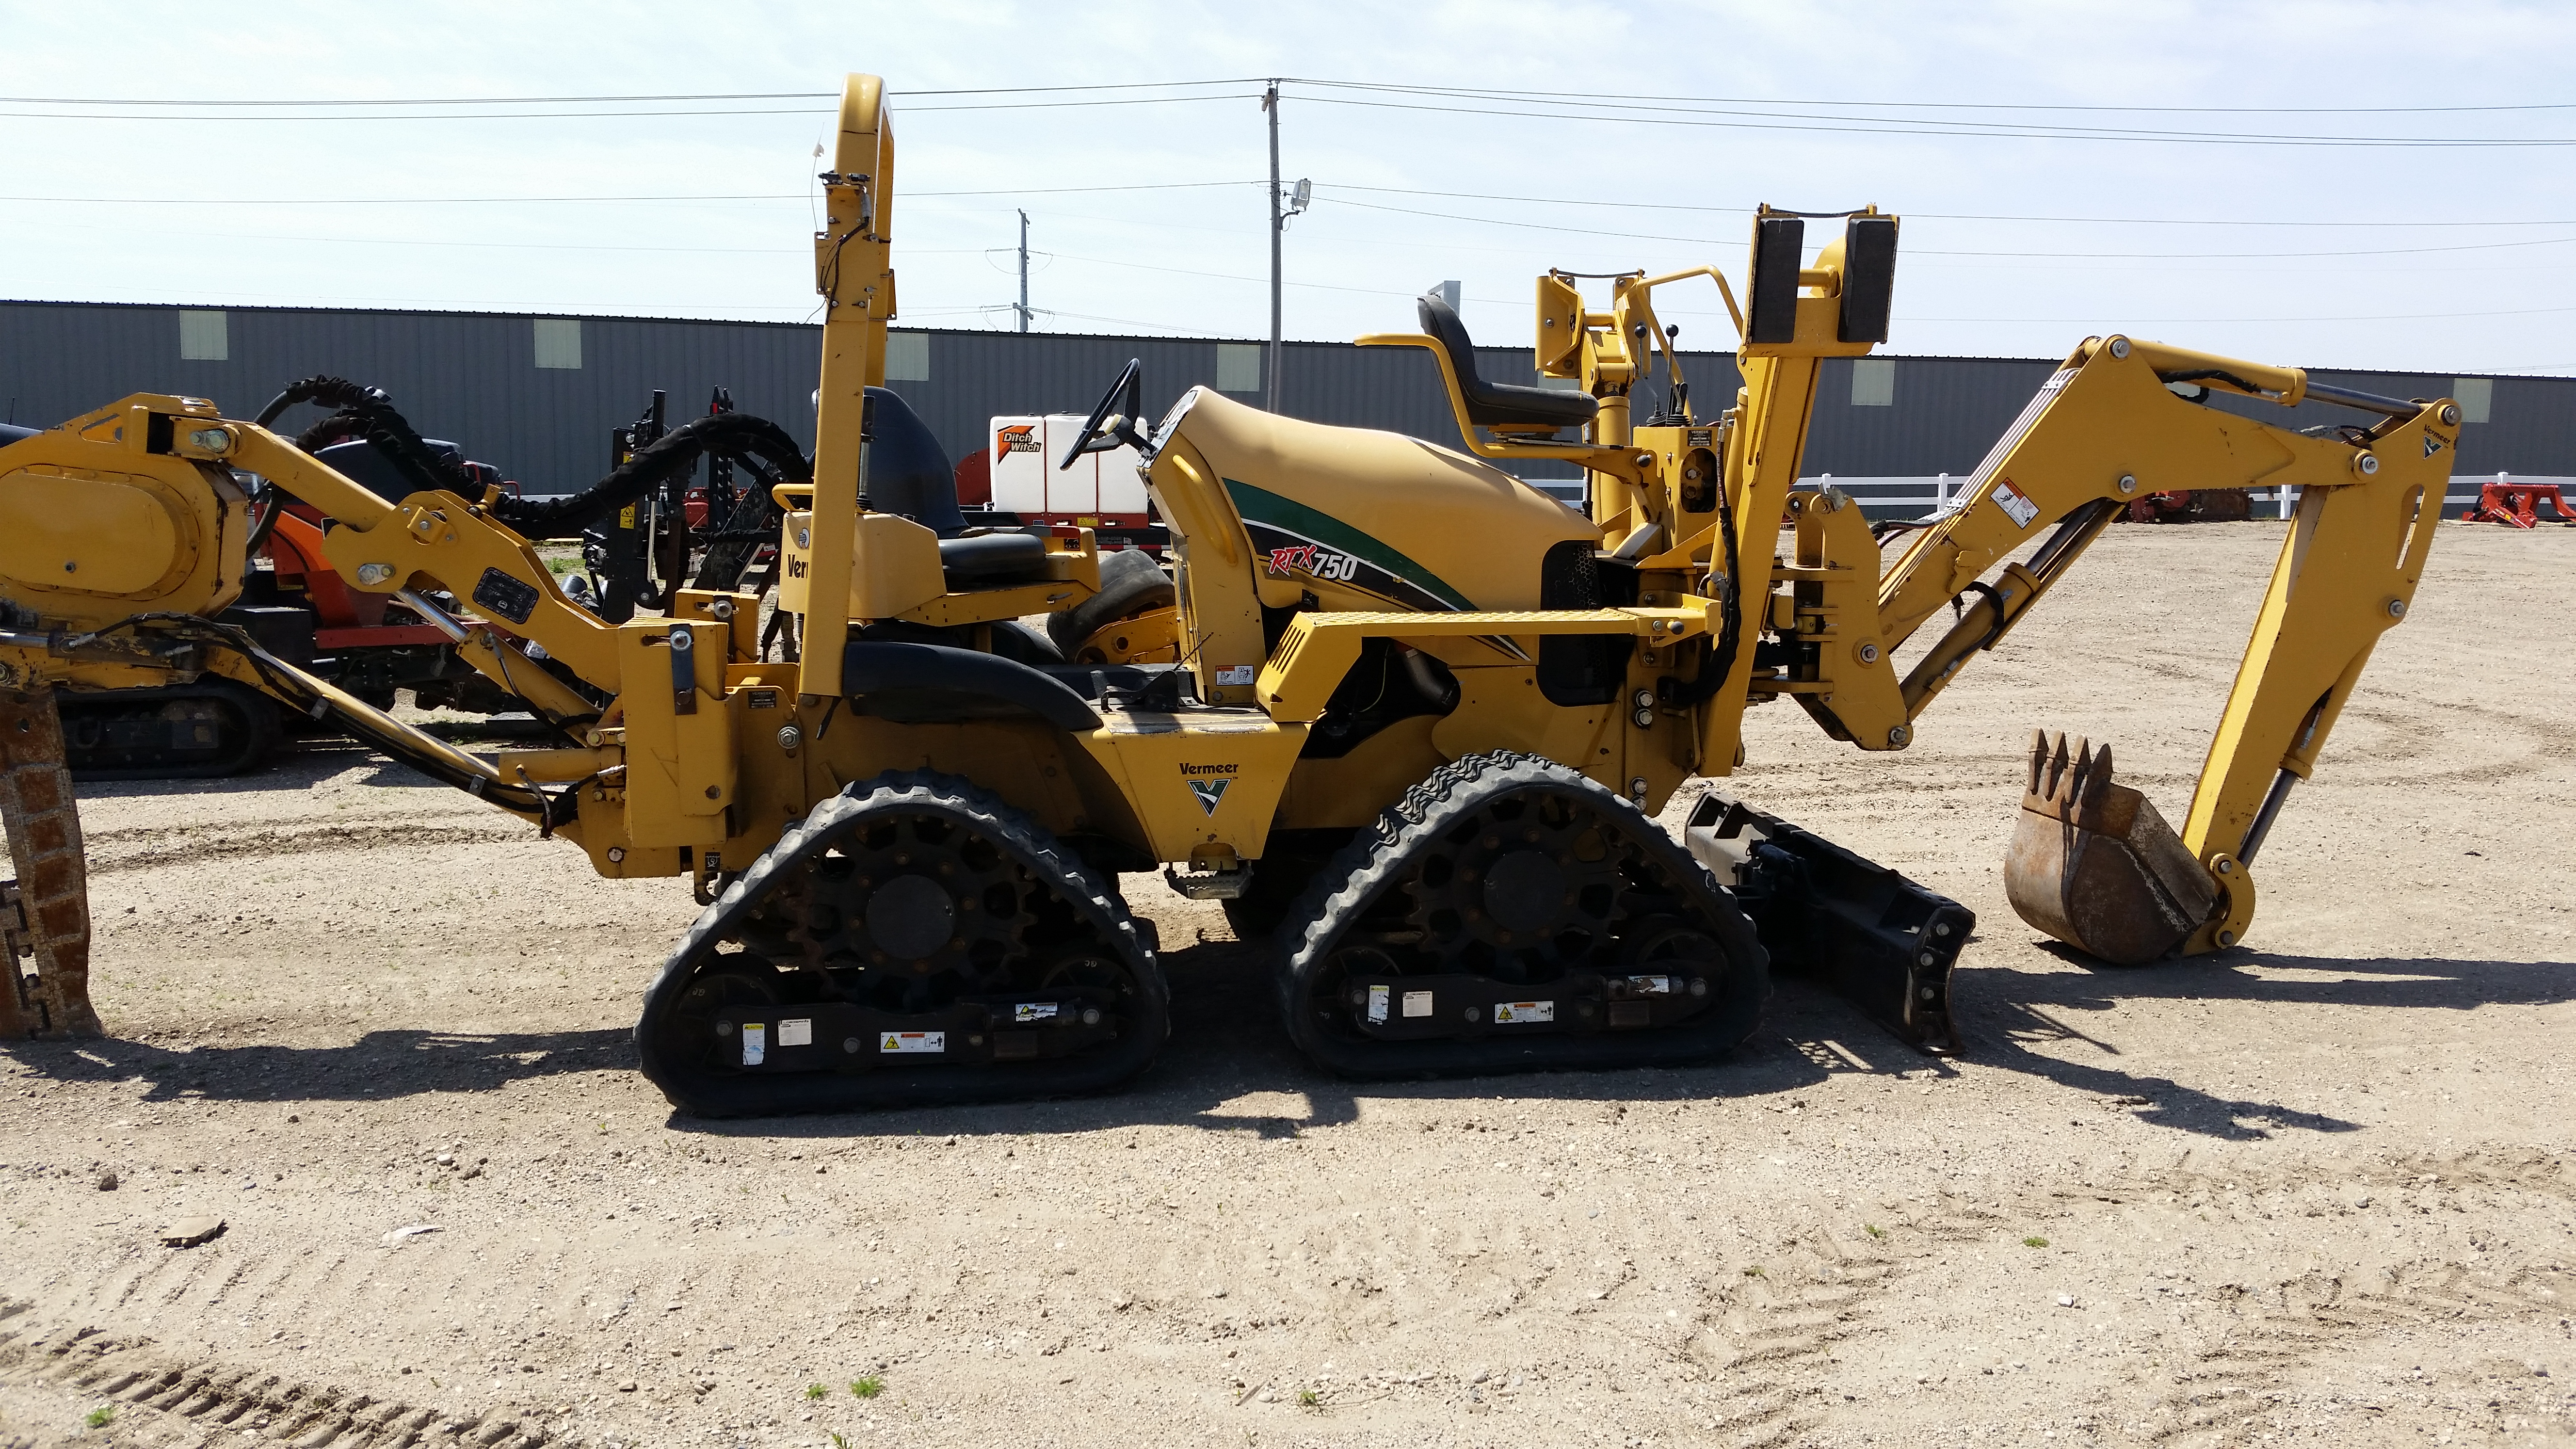 Used 2011 Vermeer RTX750 Ride-On Tractor in Shakopee, MN